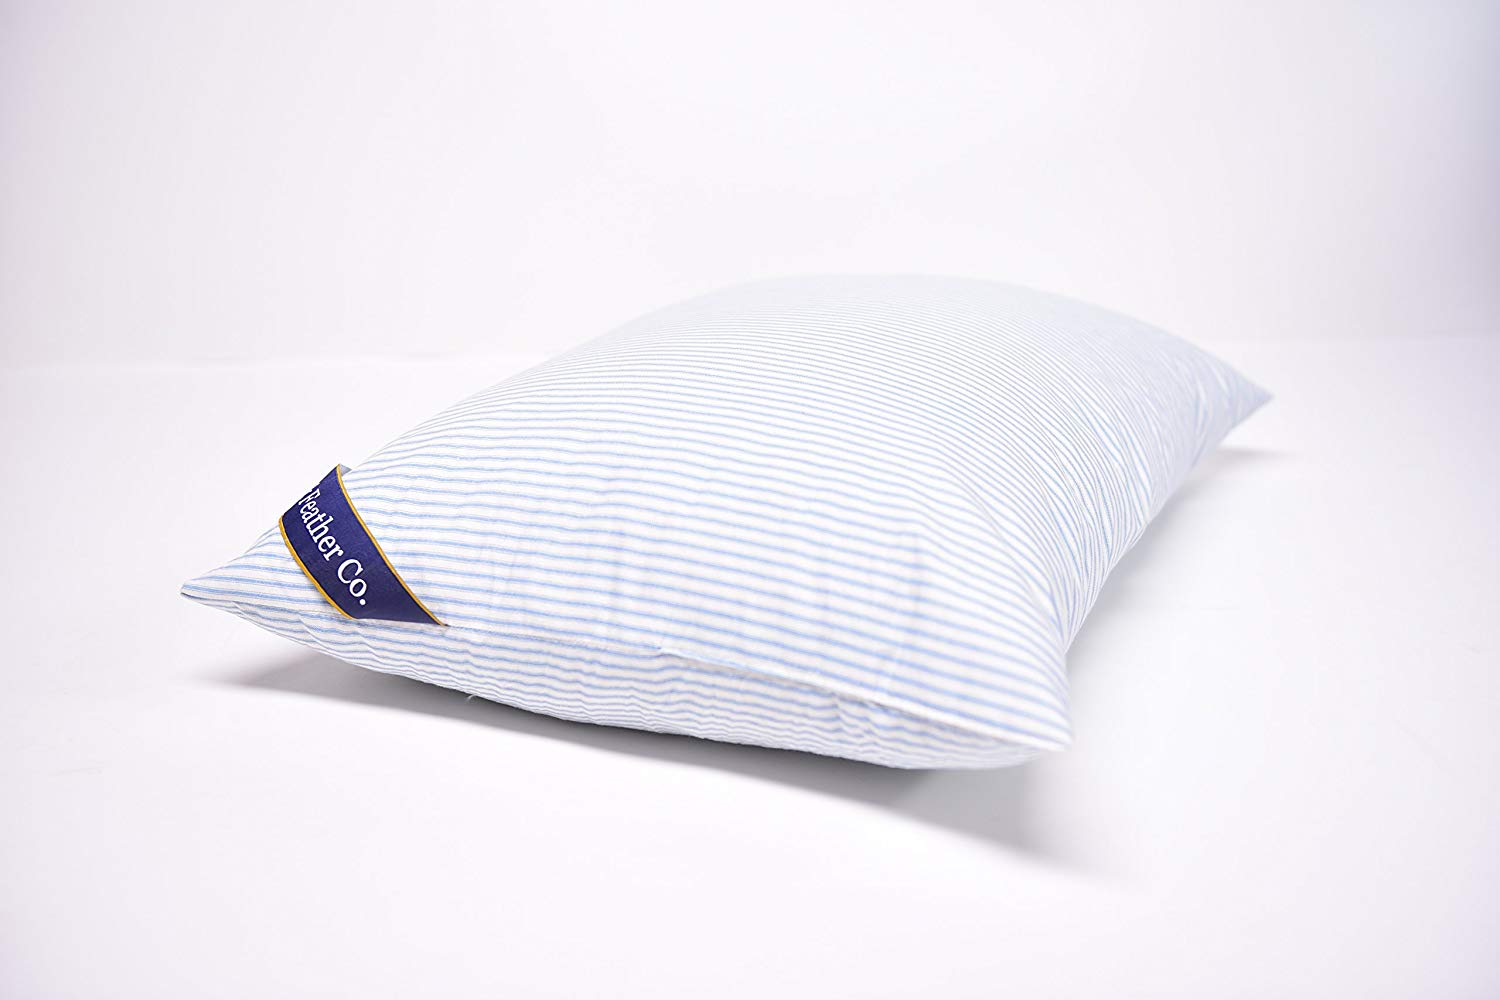 Down & Feather Co. best feather pillows review by www.dailysleep.org